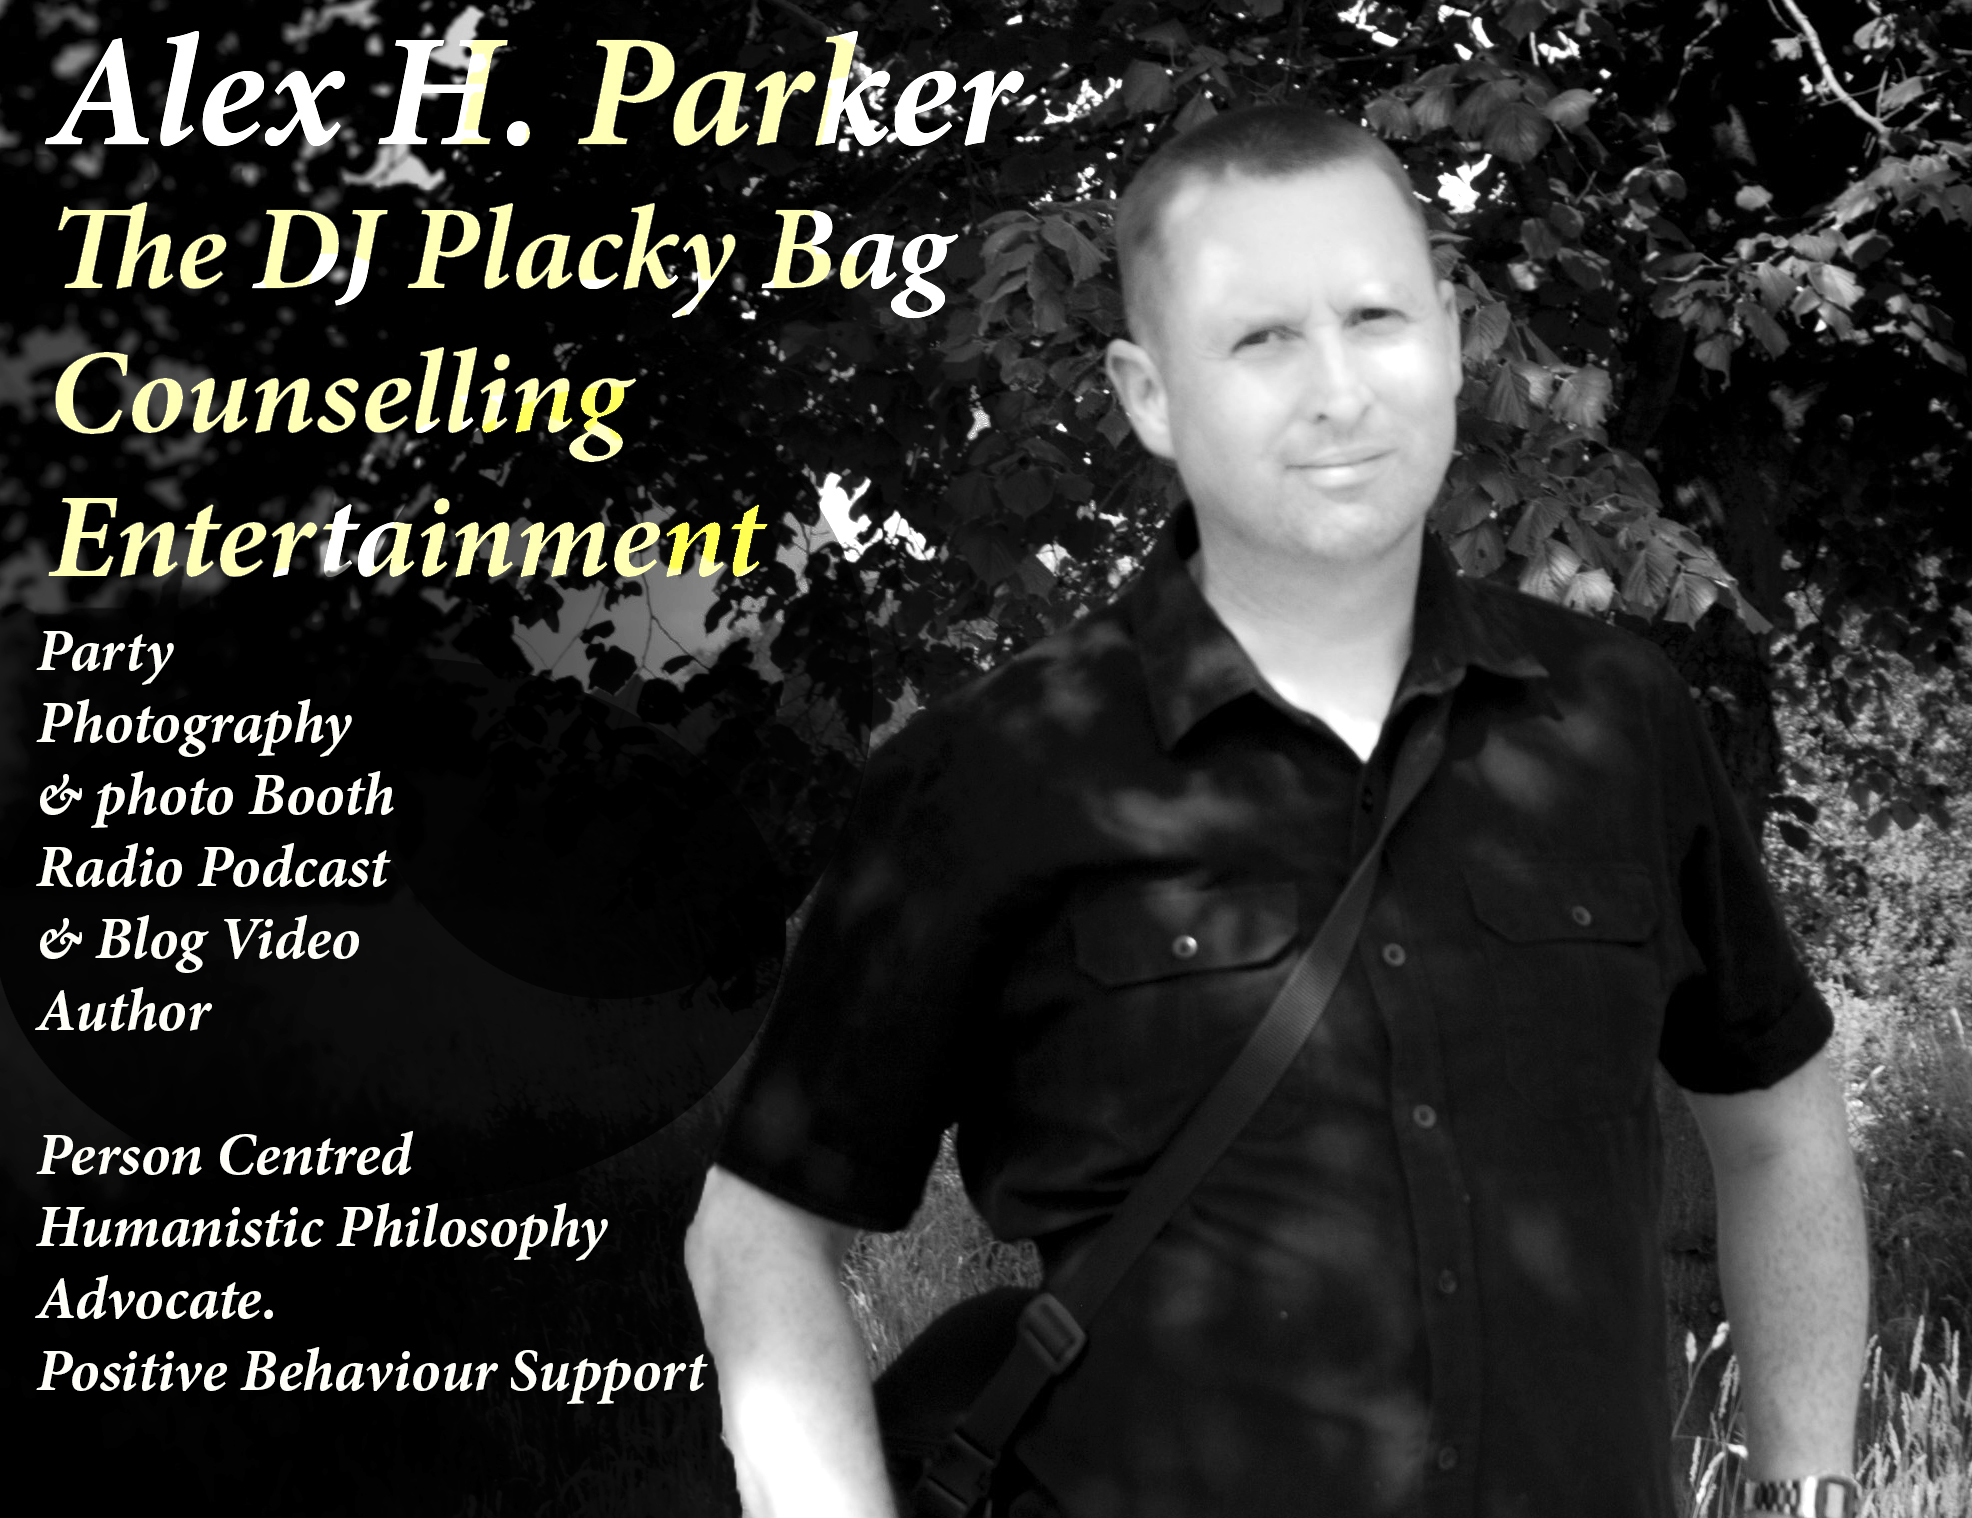 Alex H Parker Counselling Northumberland Talking Therapy, Hypnotherapy,  Positive Behaviour Support, Person Centred Care.Author, Escape family Support, Contact Morpeth, wedding DJ, mobile disco, party photography